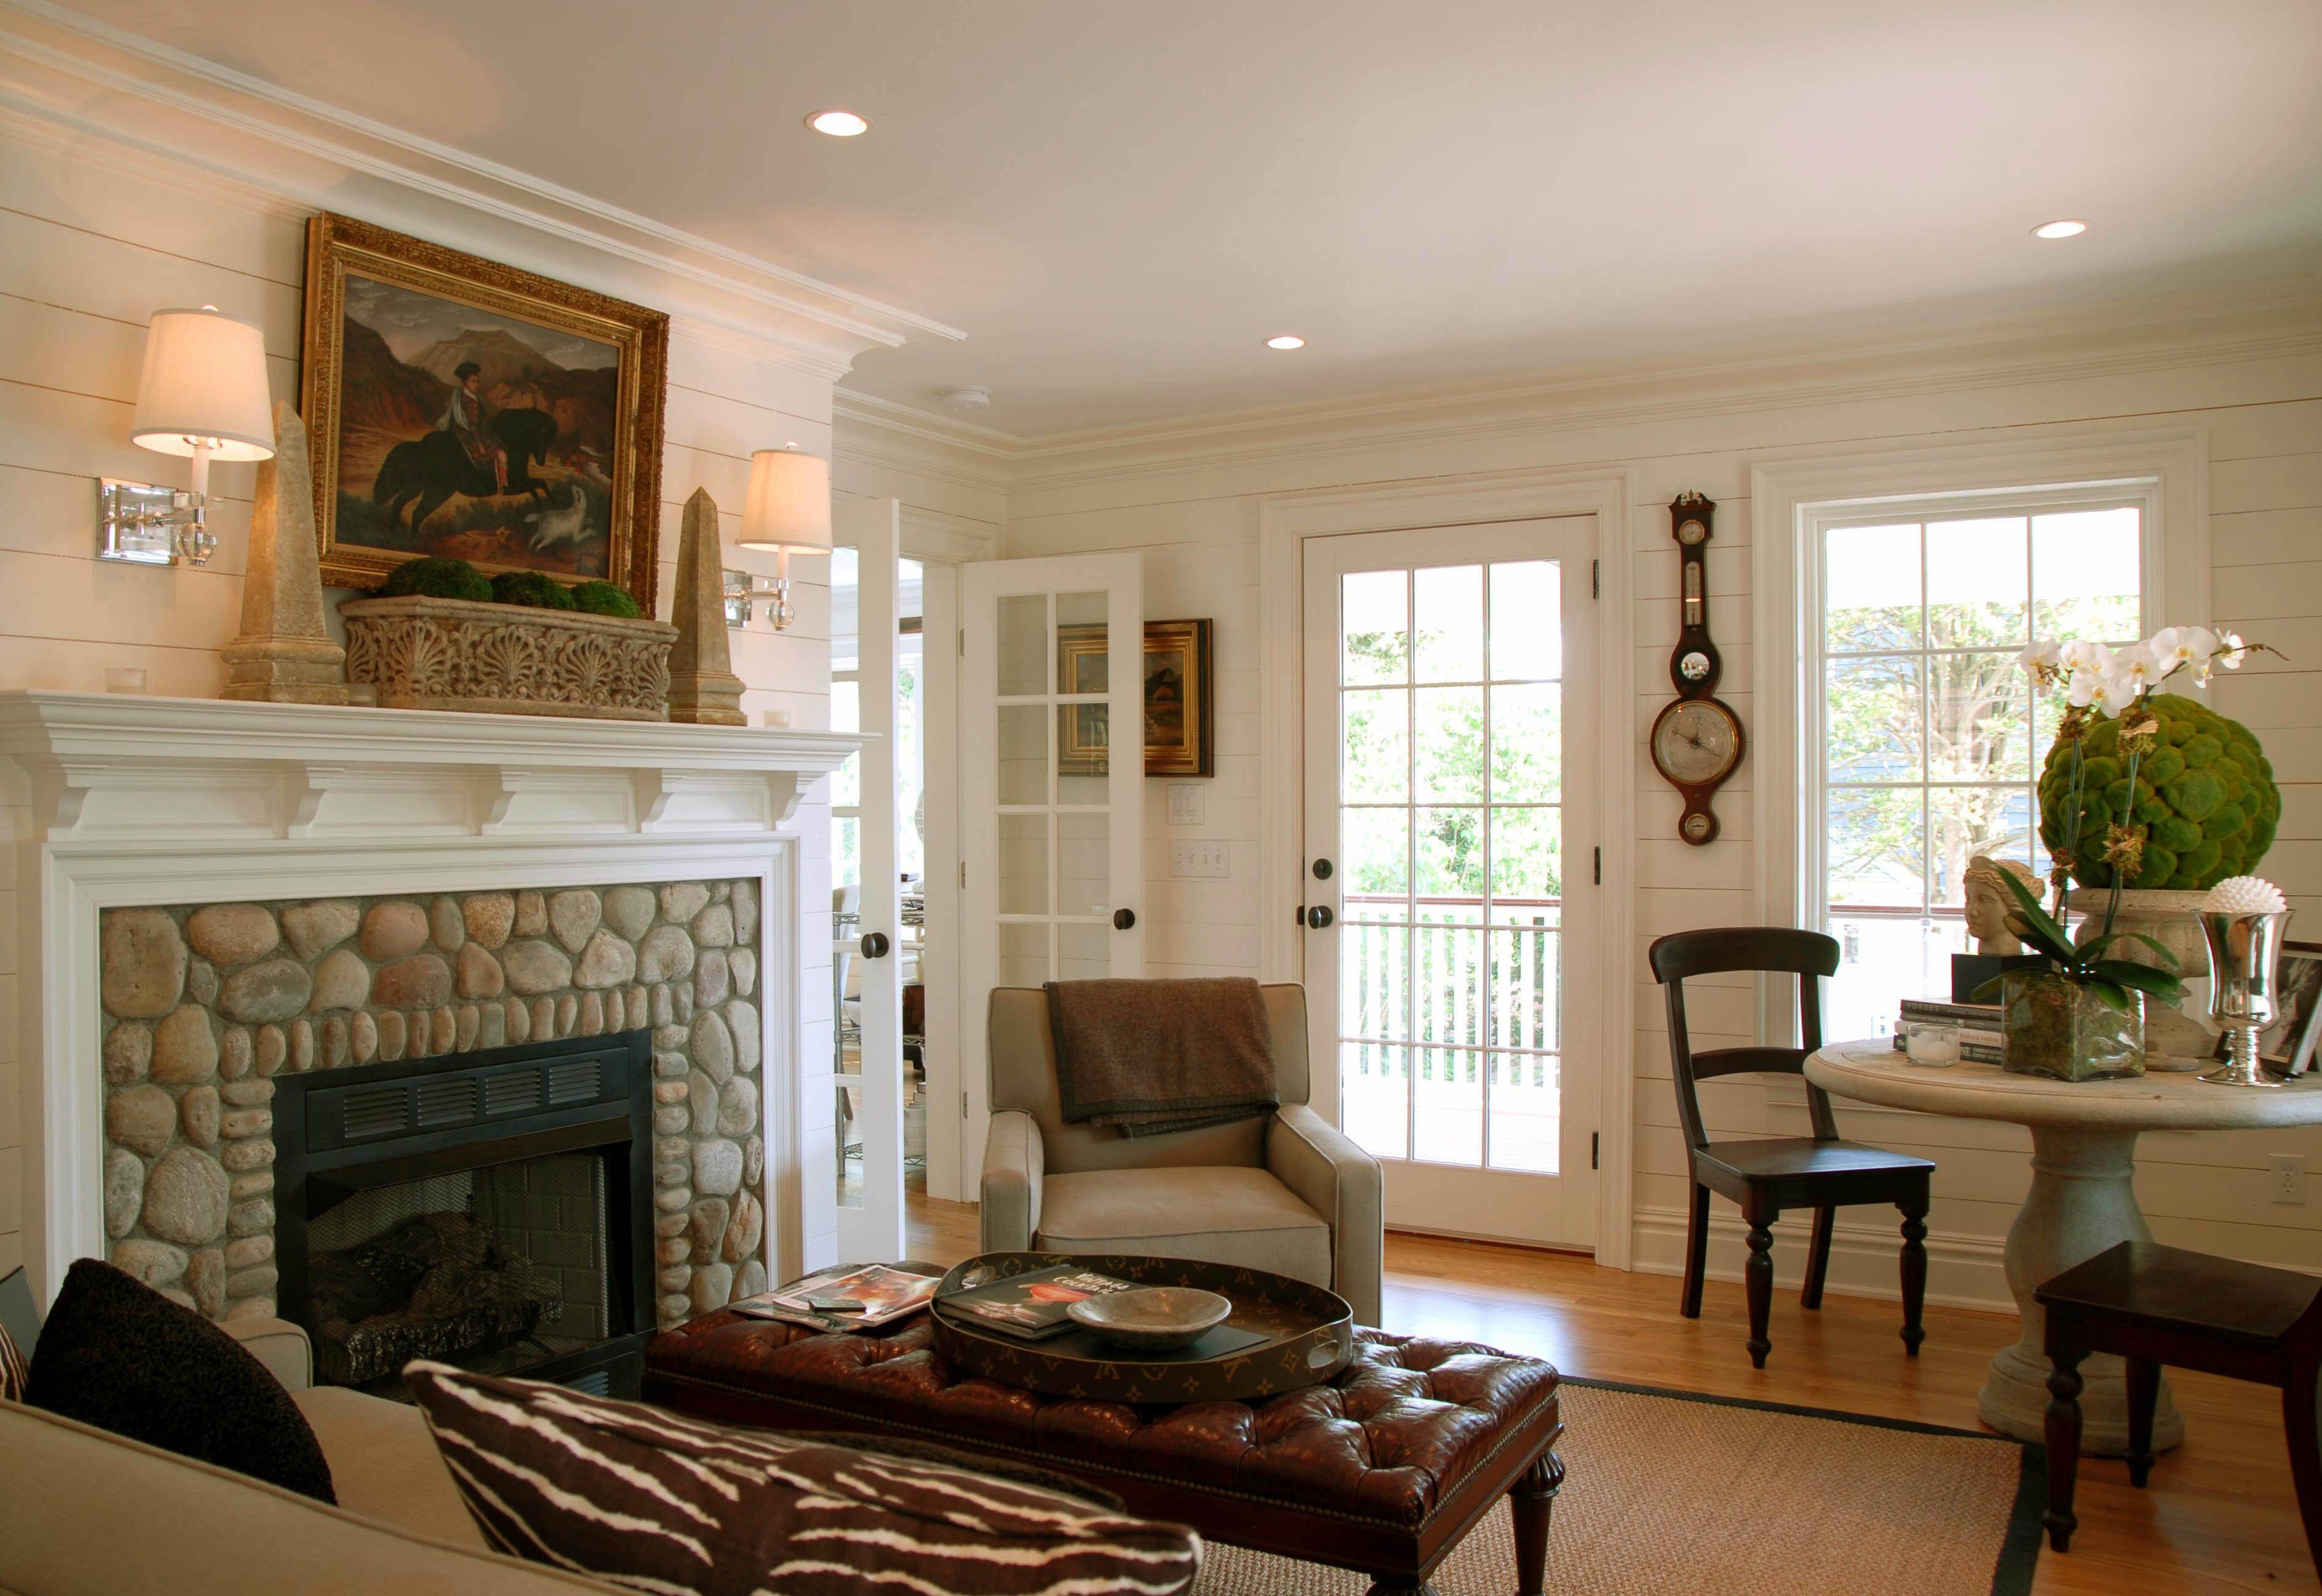 Fieldstone Fireplace With Soapstone Solid Style Ideas For A Stone Fireplace Country Club Homes Inc In 2020 Living Room With Fireplace Fireplace Surrounds Fireplace Design